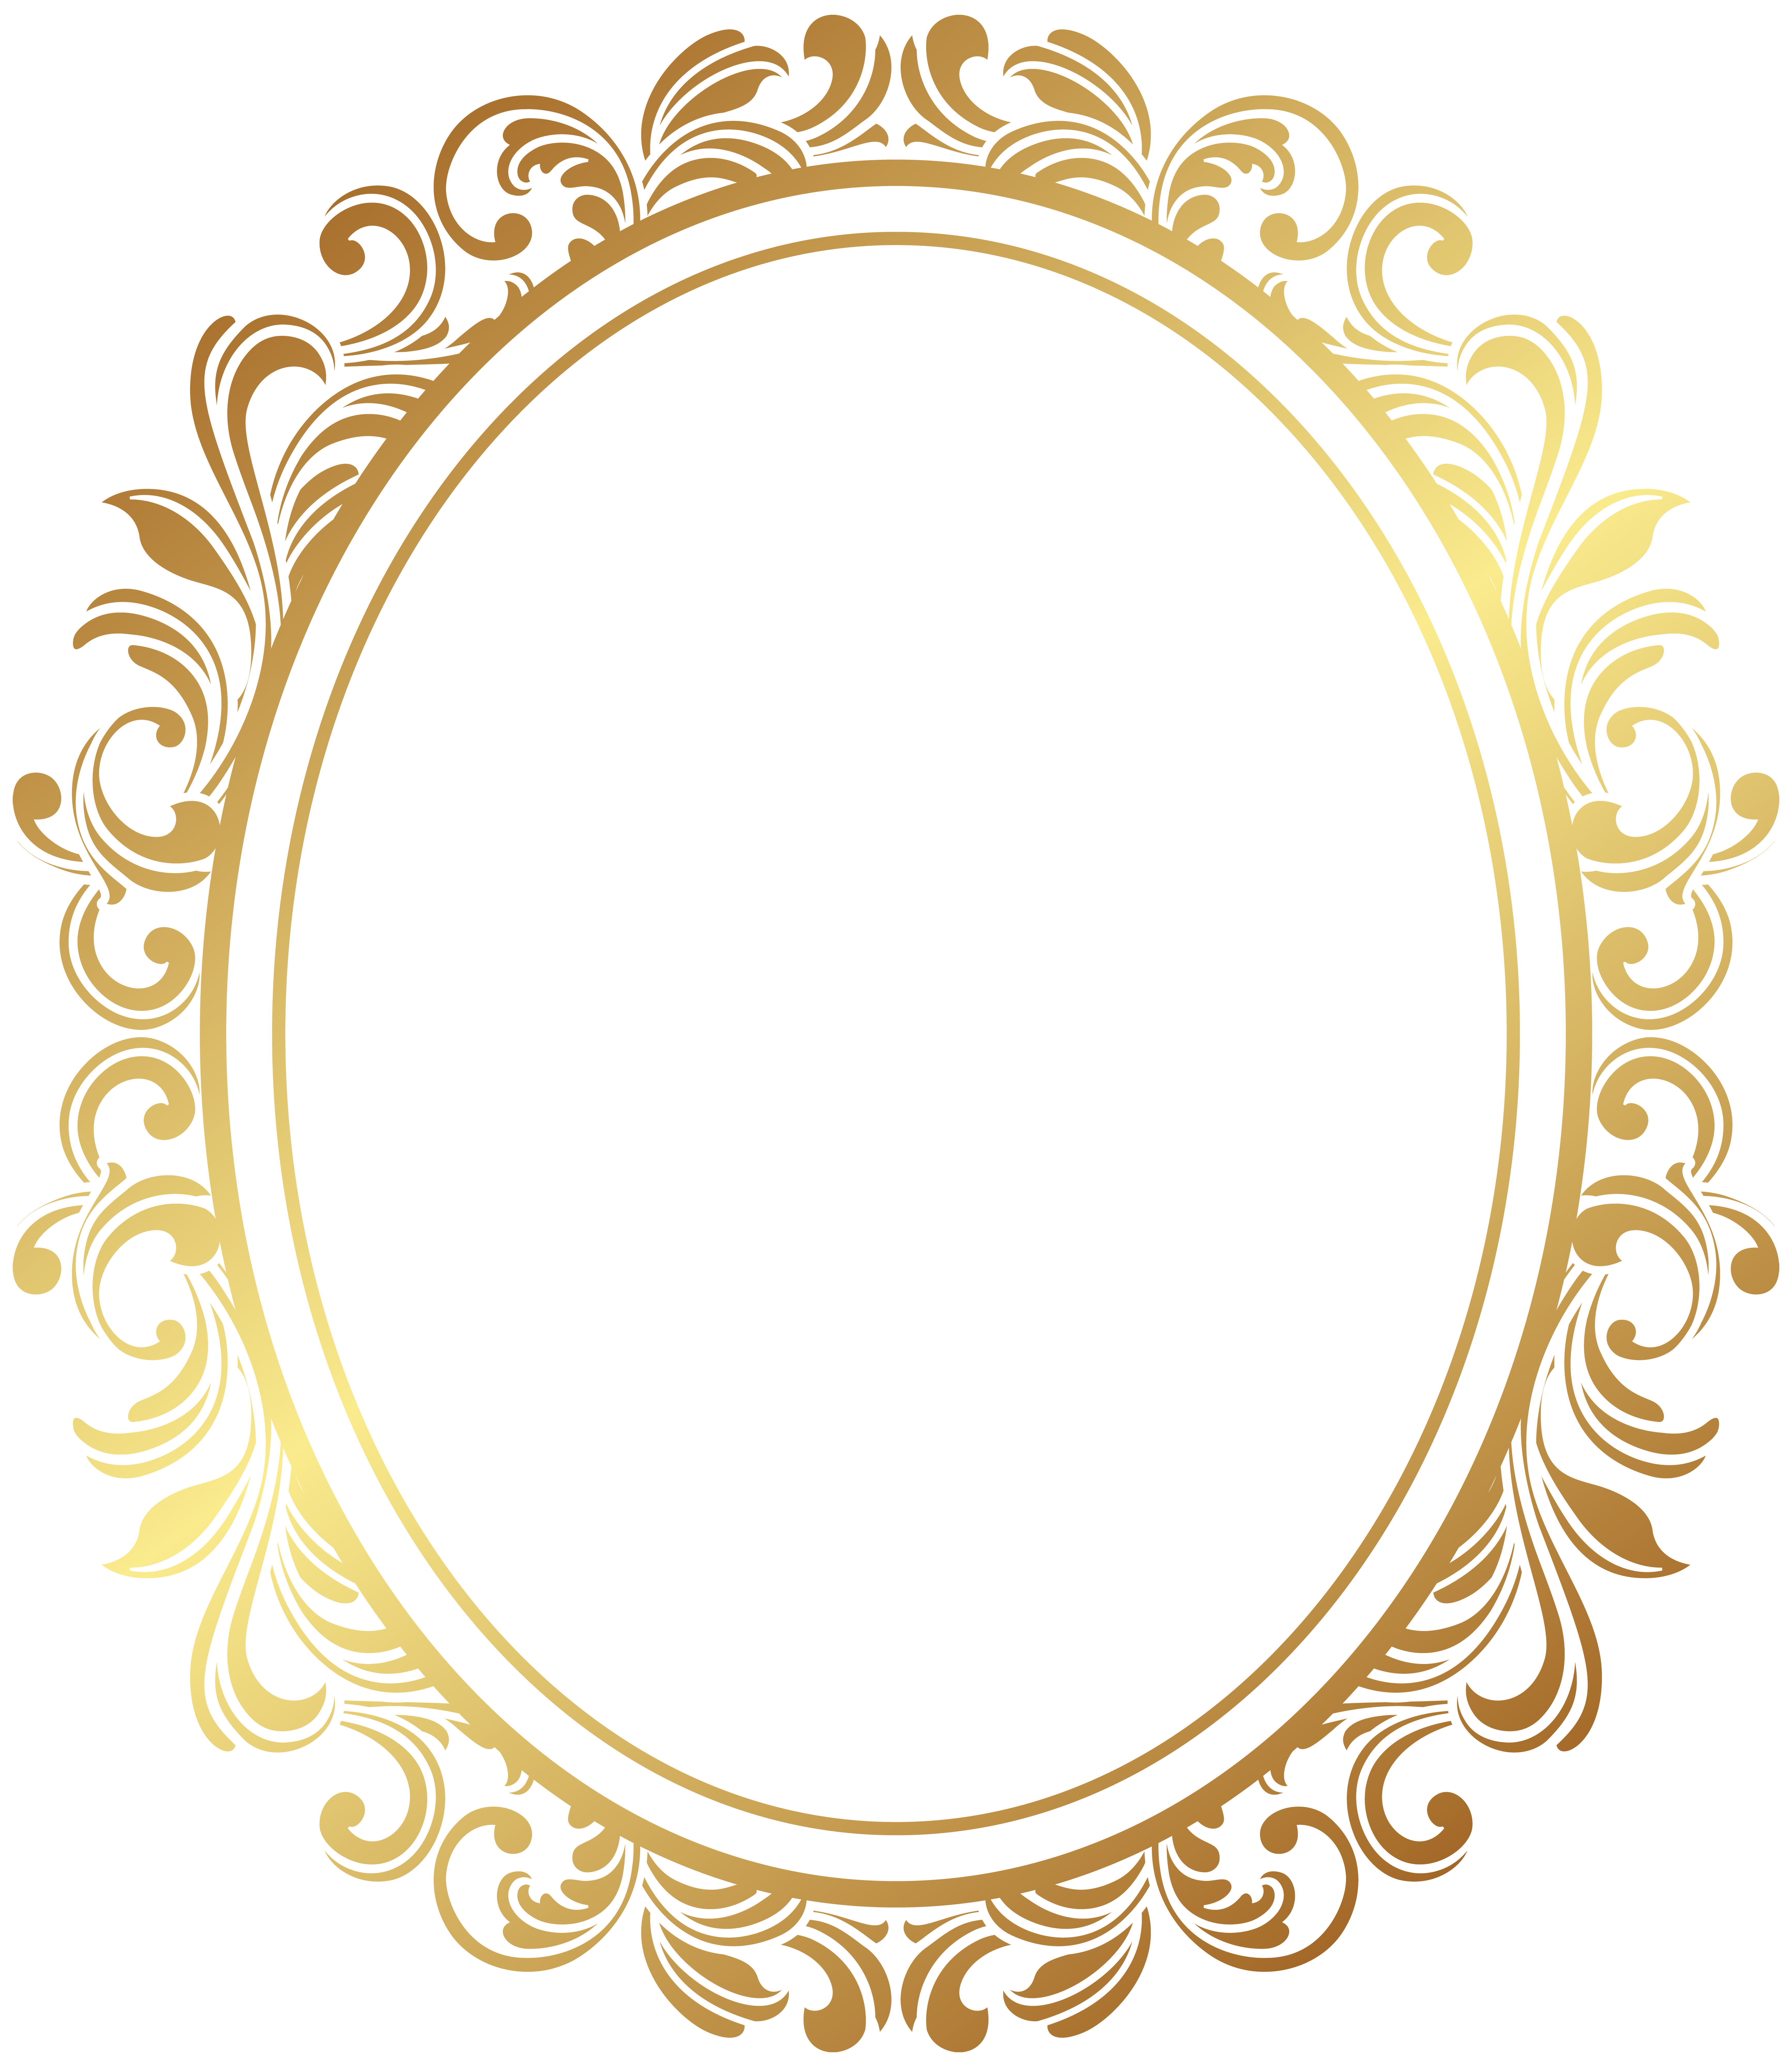 oval border png free oval border png transparent images 48649 pngio pngio com